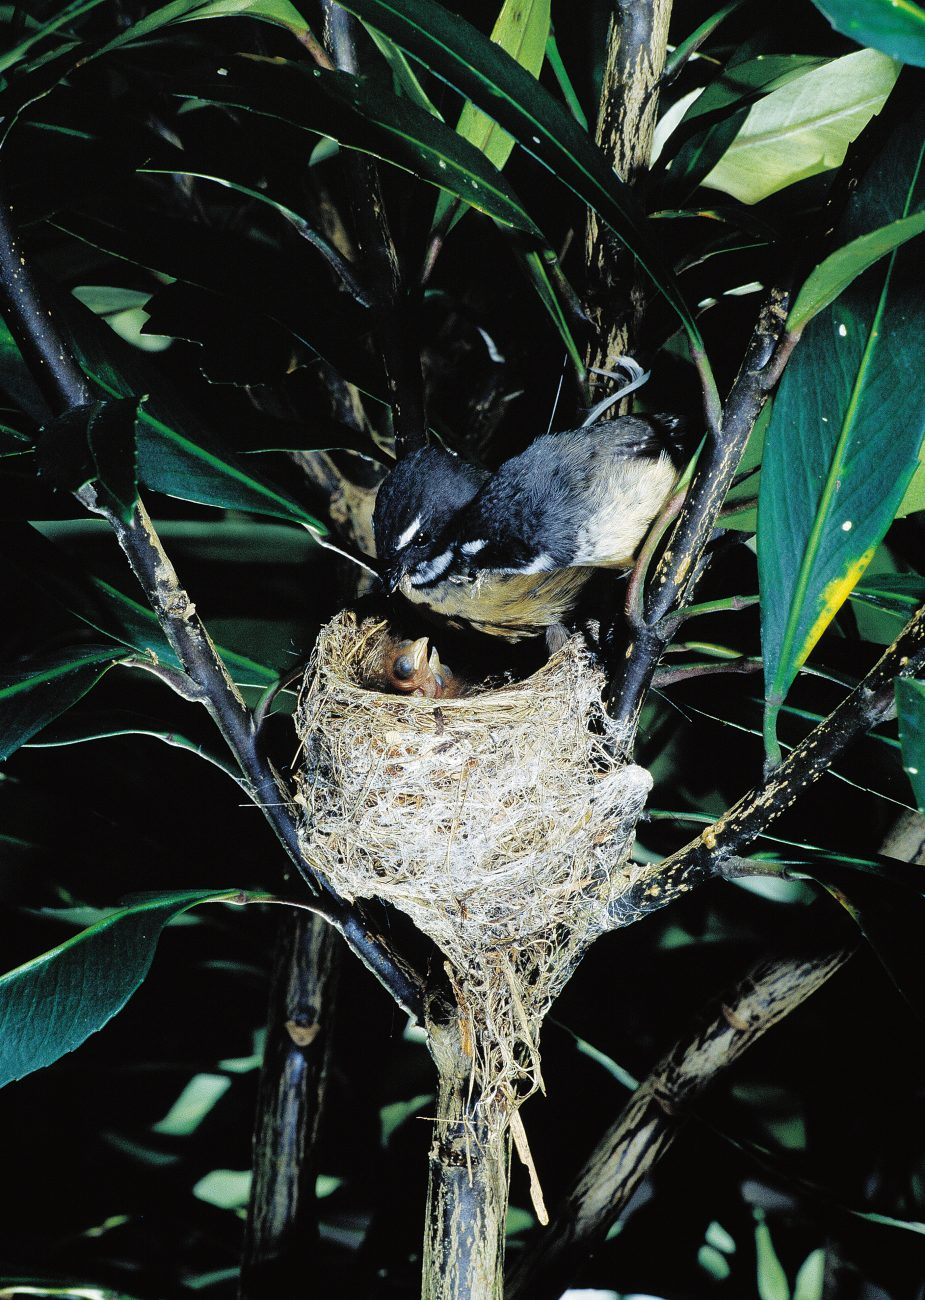 Fantails are prolific breeders or at least they try to be. Clutches of two to five eggs are laid, and up to five clutches may be produced in a season. Incubation, a task shared by both parents, takes about 14 days, and another fortnight passes before the young fledge and leave the nest.